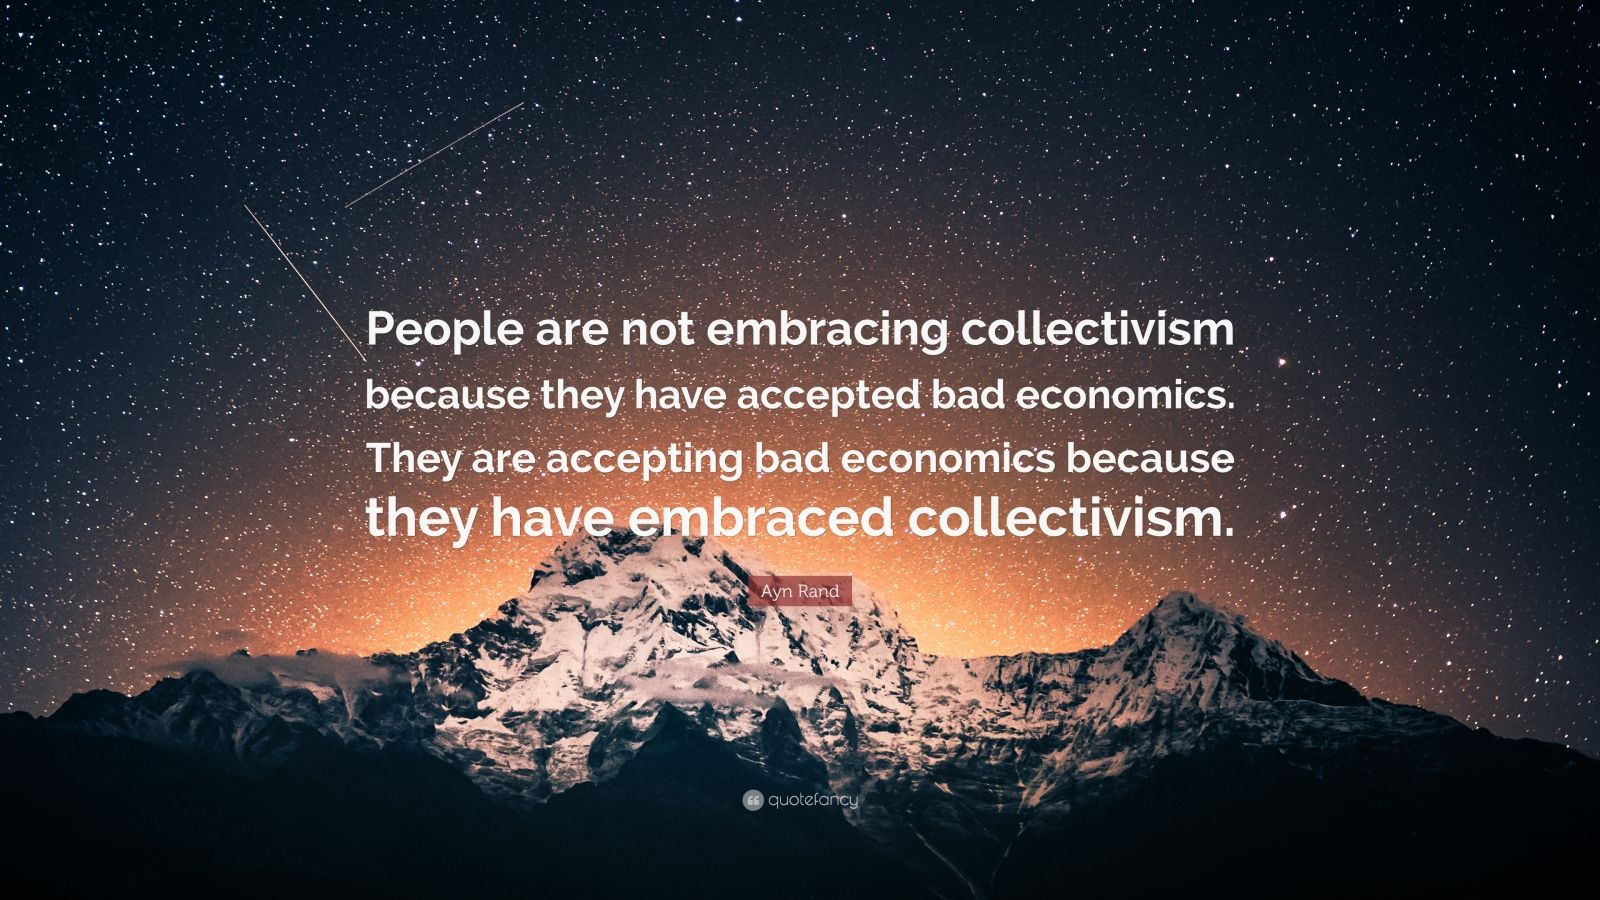 an analysis of ayn rands views about collectivism